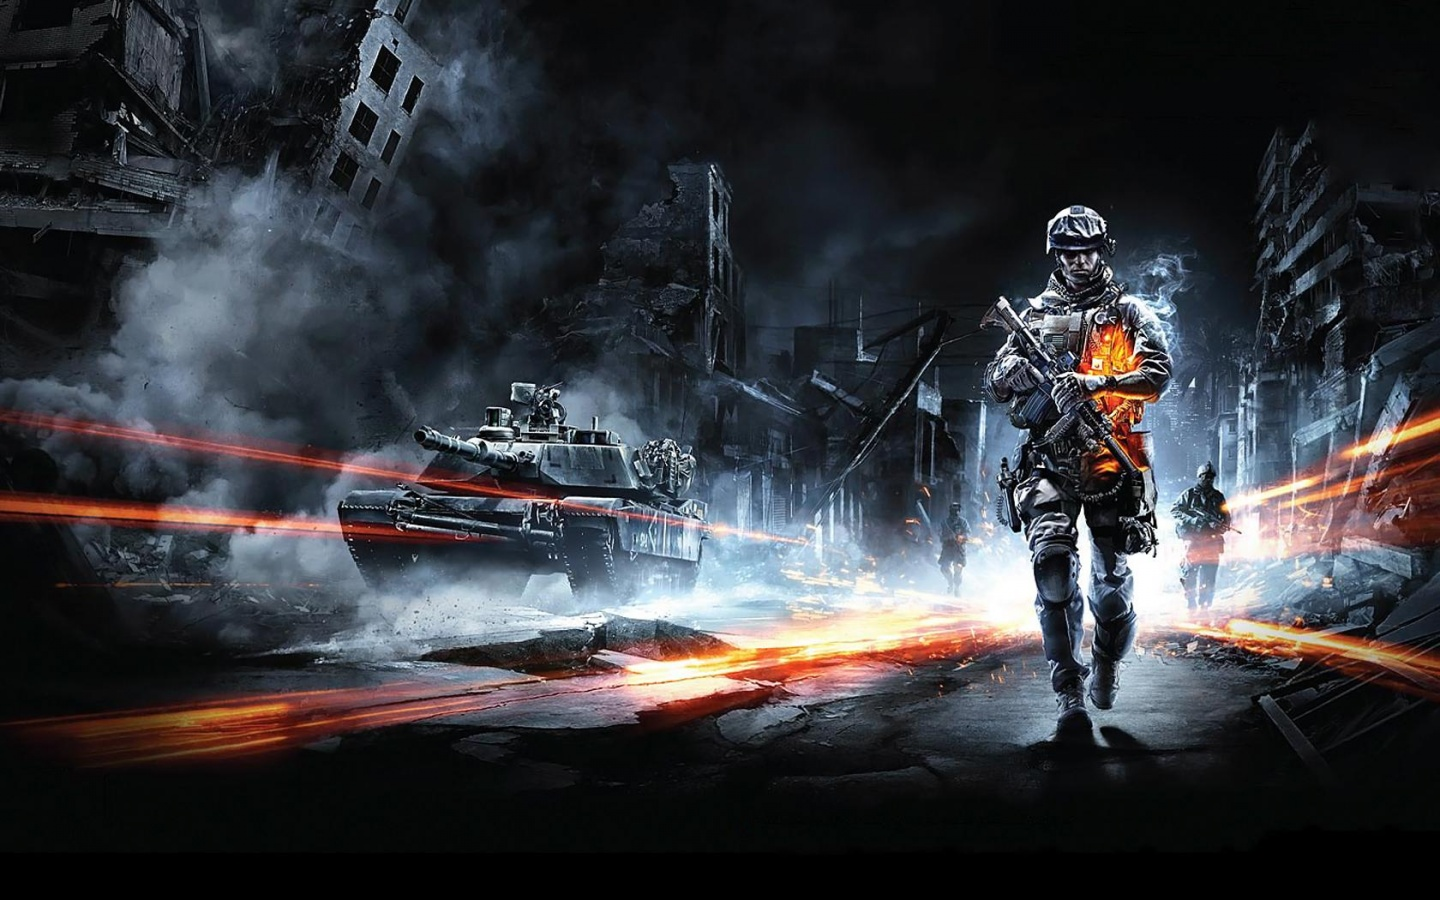 battlefield 3 pc wallpapers - photo #9